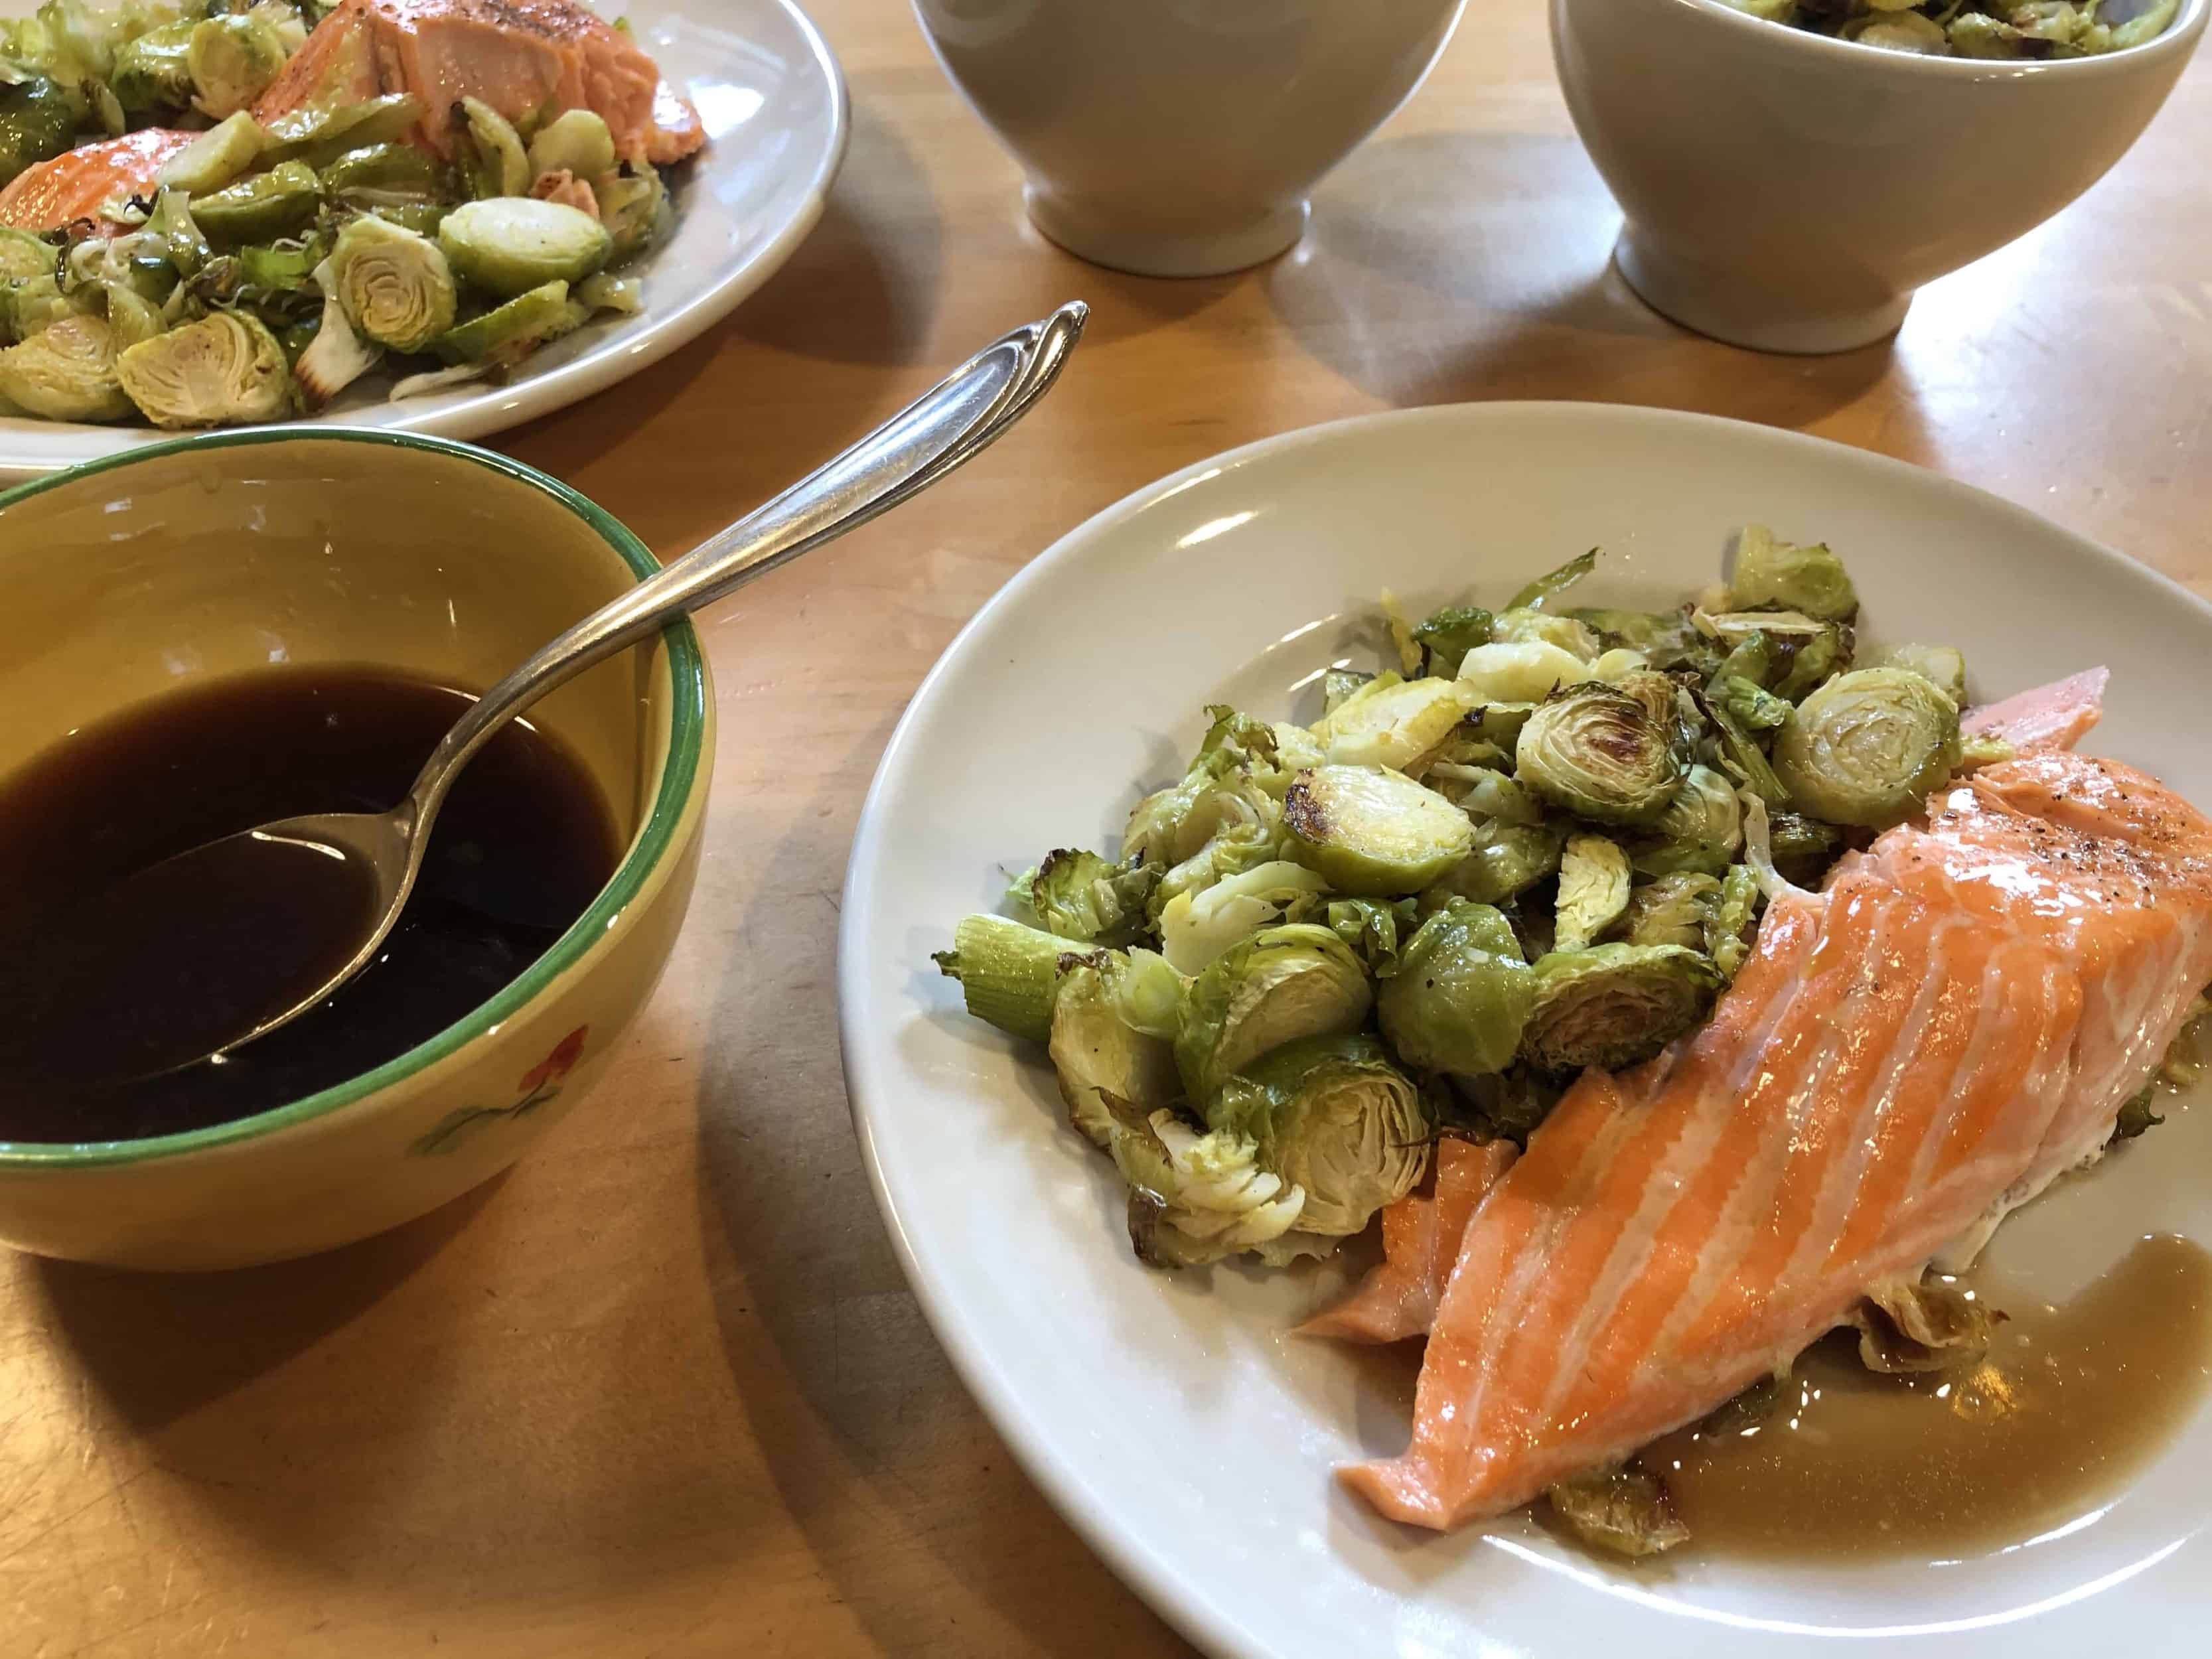 Try this recipe and enjoy, sheet-pan salmon and brussels sprouts with citrus-soy sauce.